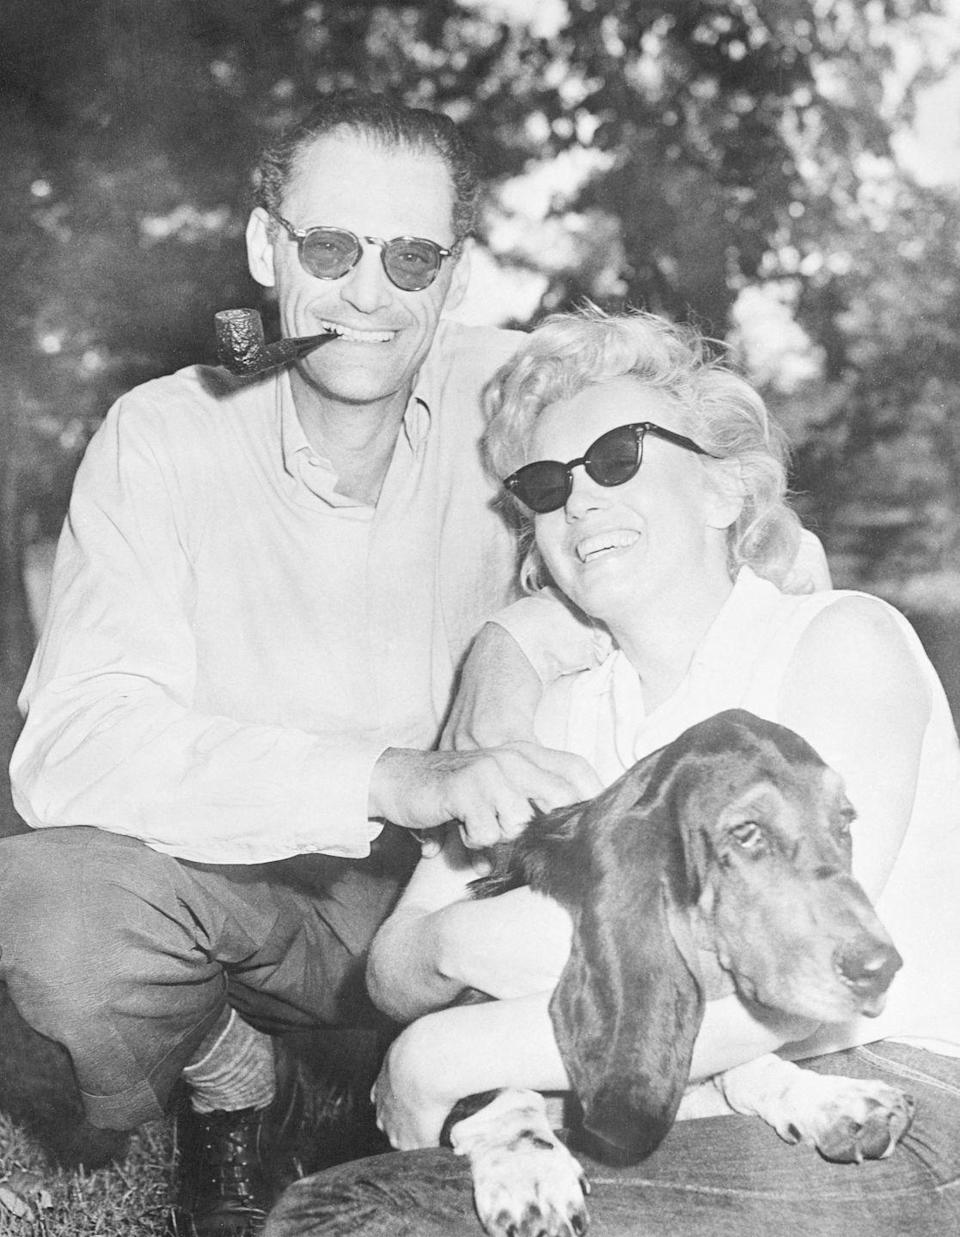 """<p>During her marriage to famous playwright Arthur Miller, Marilyn Monroe often retreated to Arthur's country home in Roxbury, Connecticut with the couple's basset hound, Hugo. After their divorce, Marilyn was gifted a <a href=""""https://www.neatorama.com/2016/01/27/Marilyn-Monroe-and-Her-Pets/"""" rel=""""nofollow noopener"""" target=""""_blank"""" data-ylk=""""slk:white Poodle puppy from Frank Sinatra"""" class=""""link rapid-noclick-resp"""">white Poodle puppy from Frank Sinatra</a>, which she named Maf. </p>"""